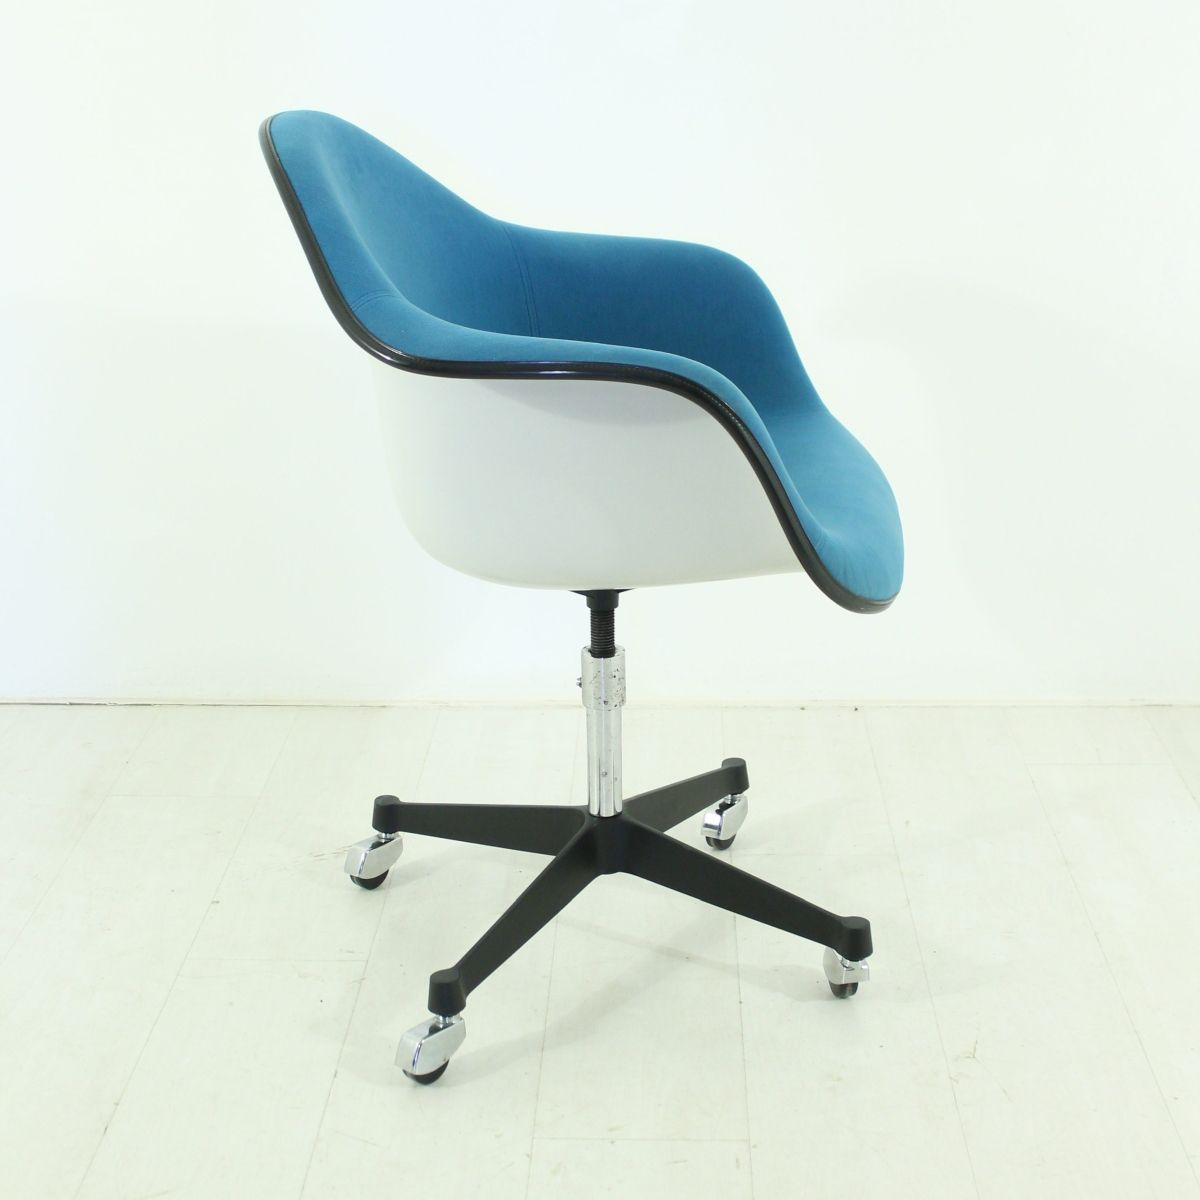 Vintage office chair by charles ray eames for vitra for for Eames chair nachbau deutschland